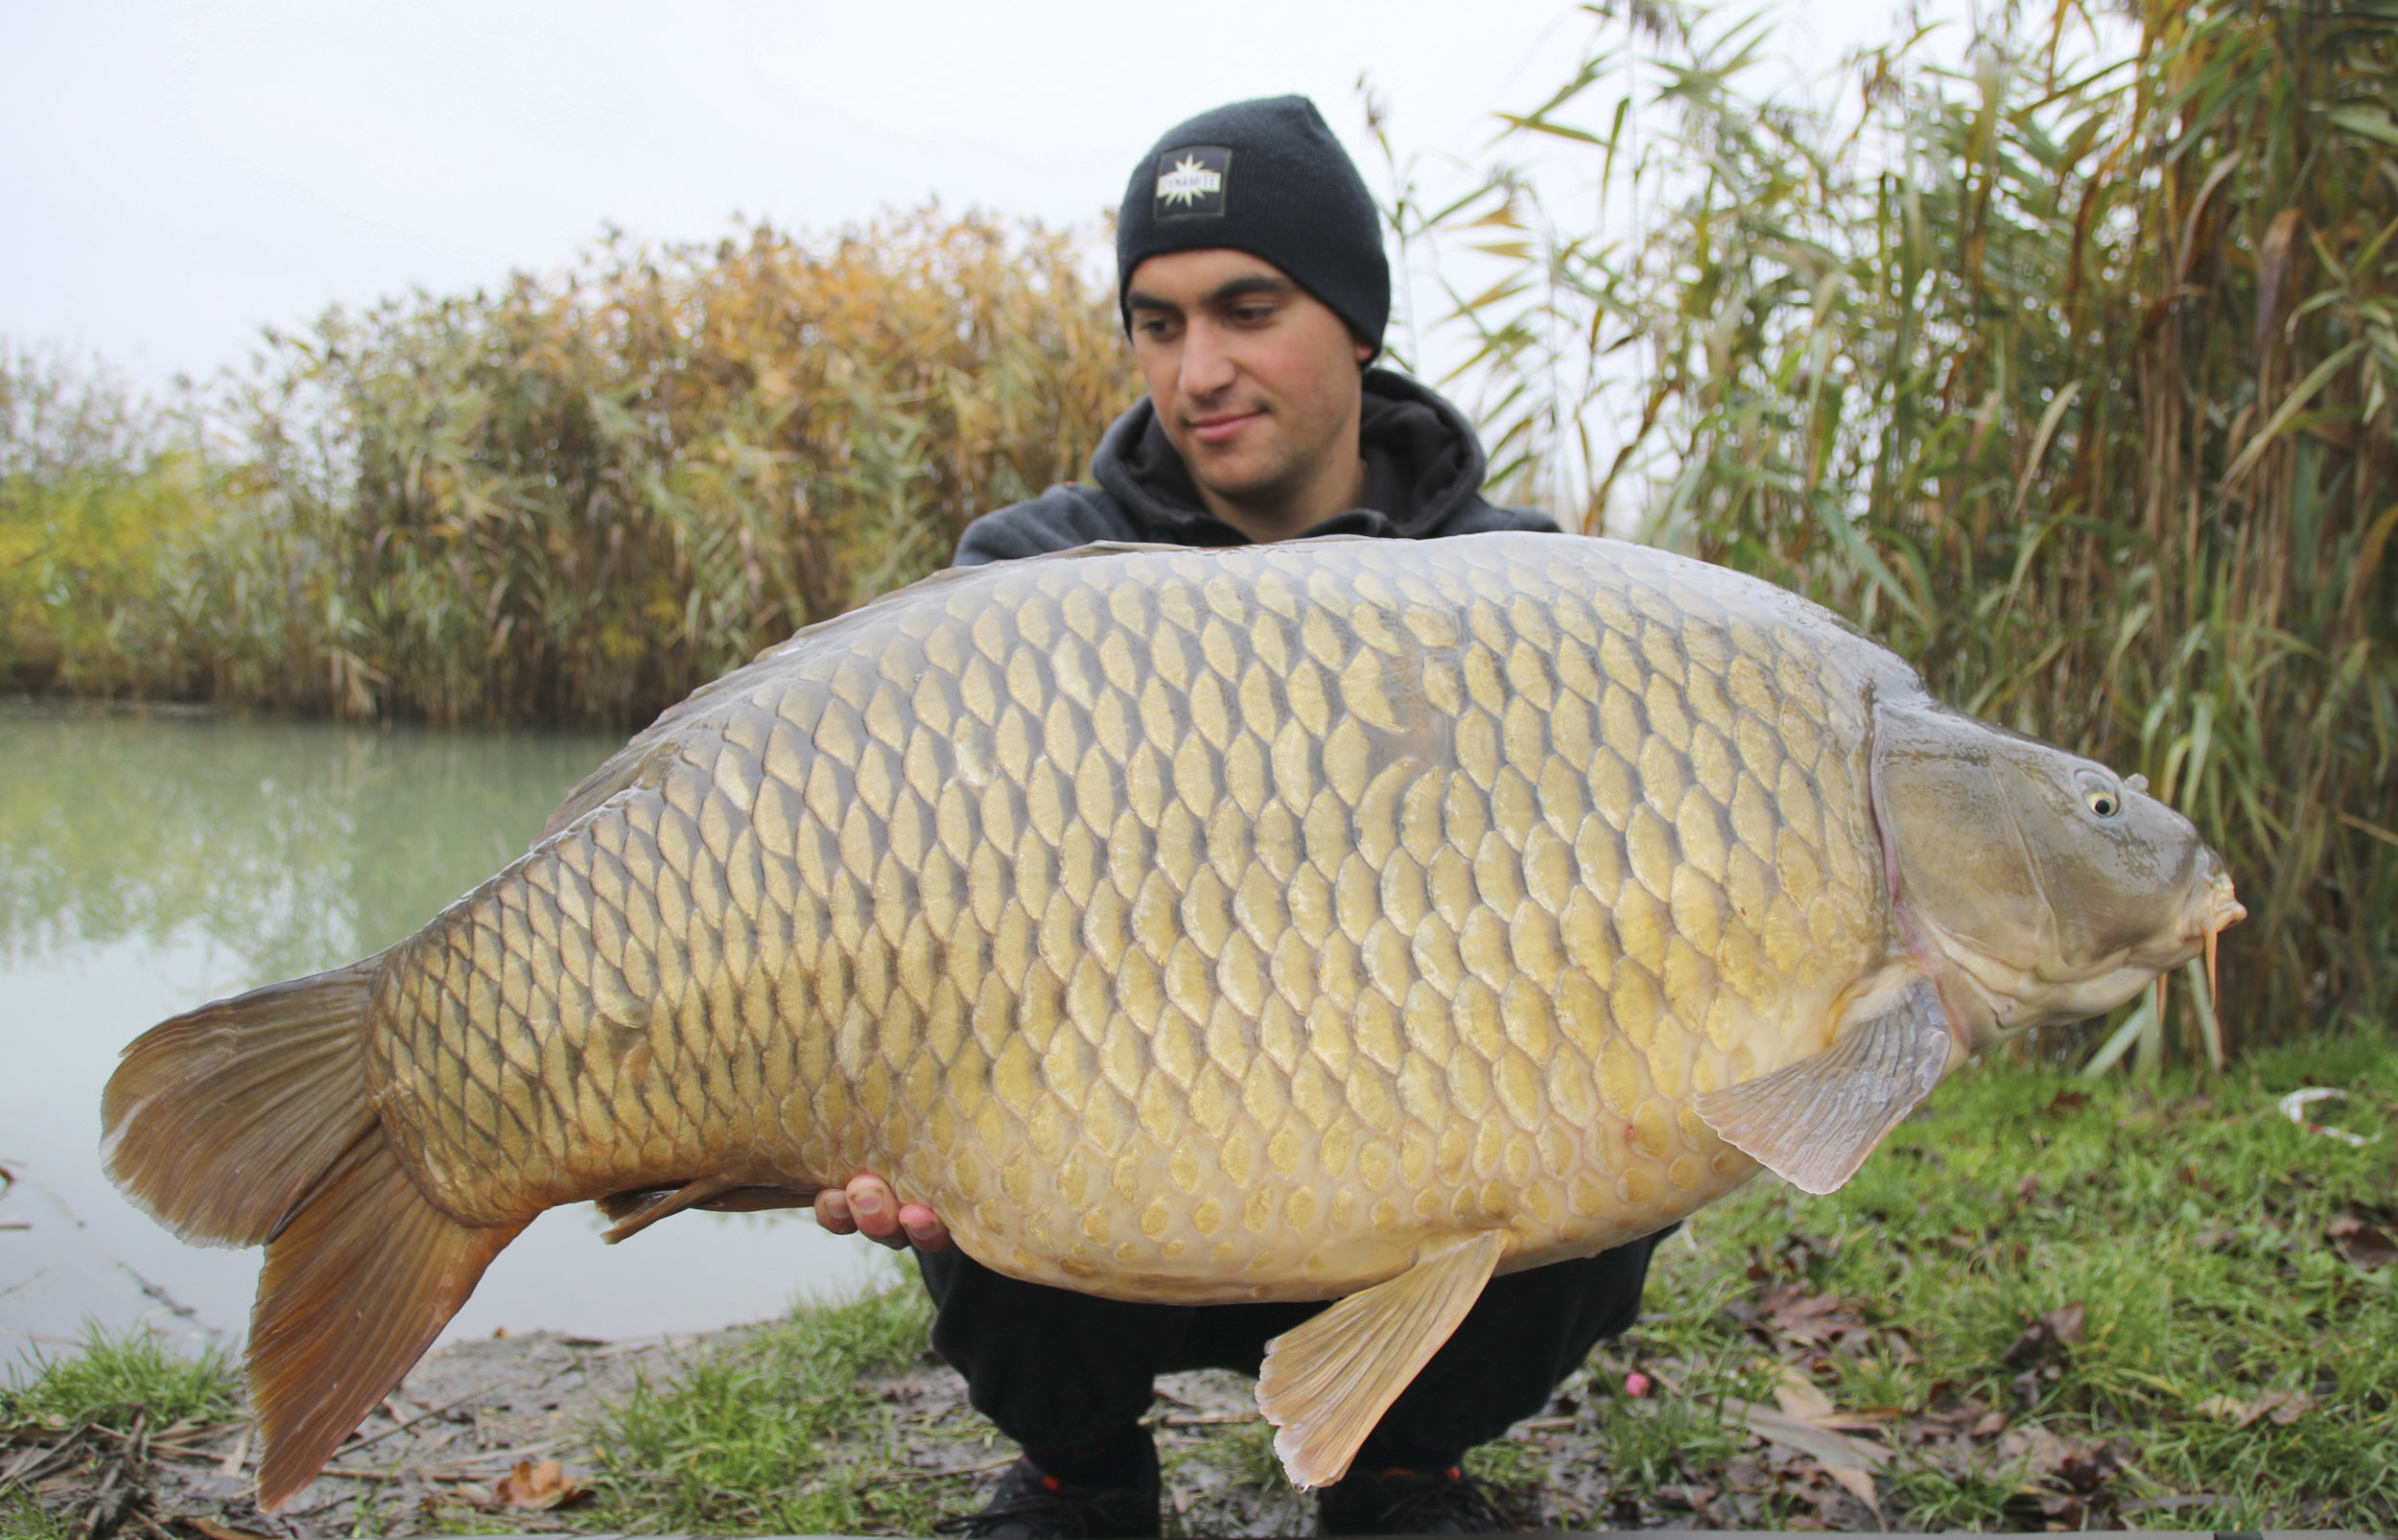 One of the most beautiful commons weighing 25.3kg.